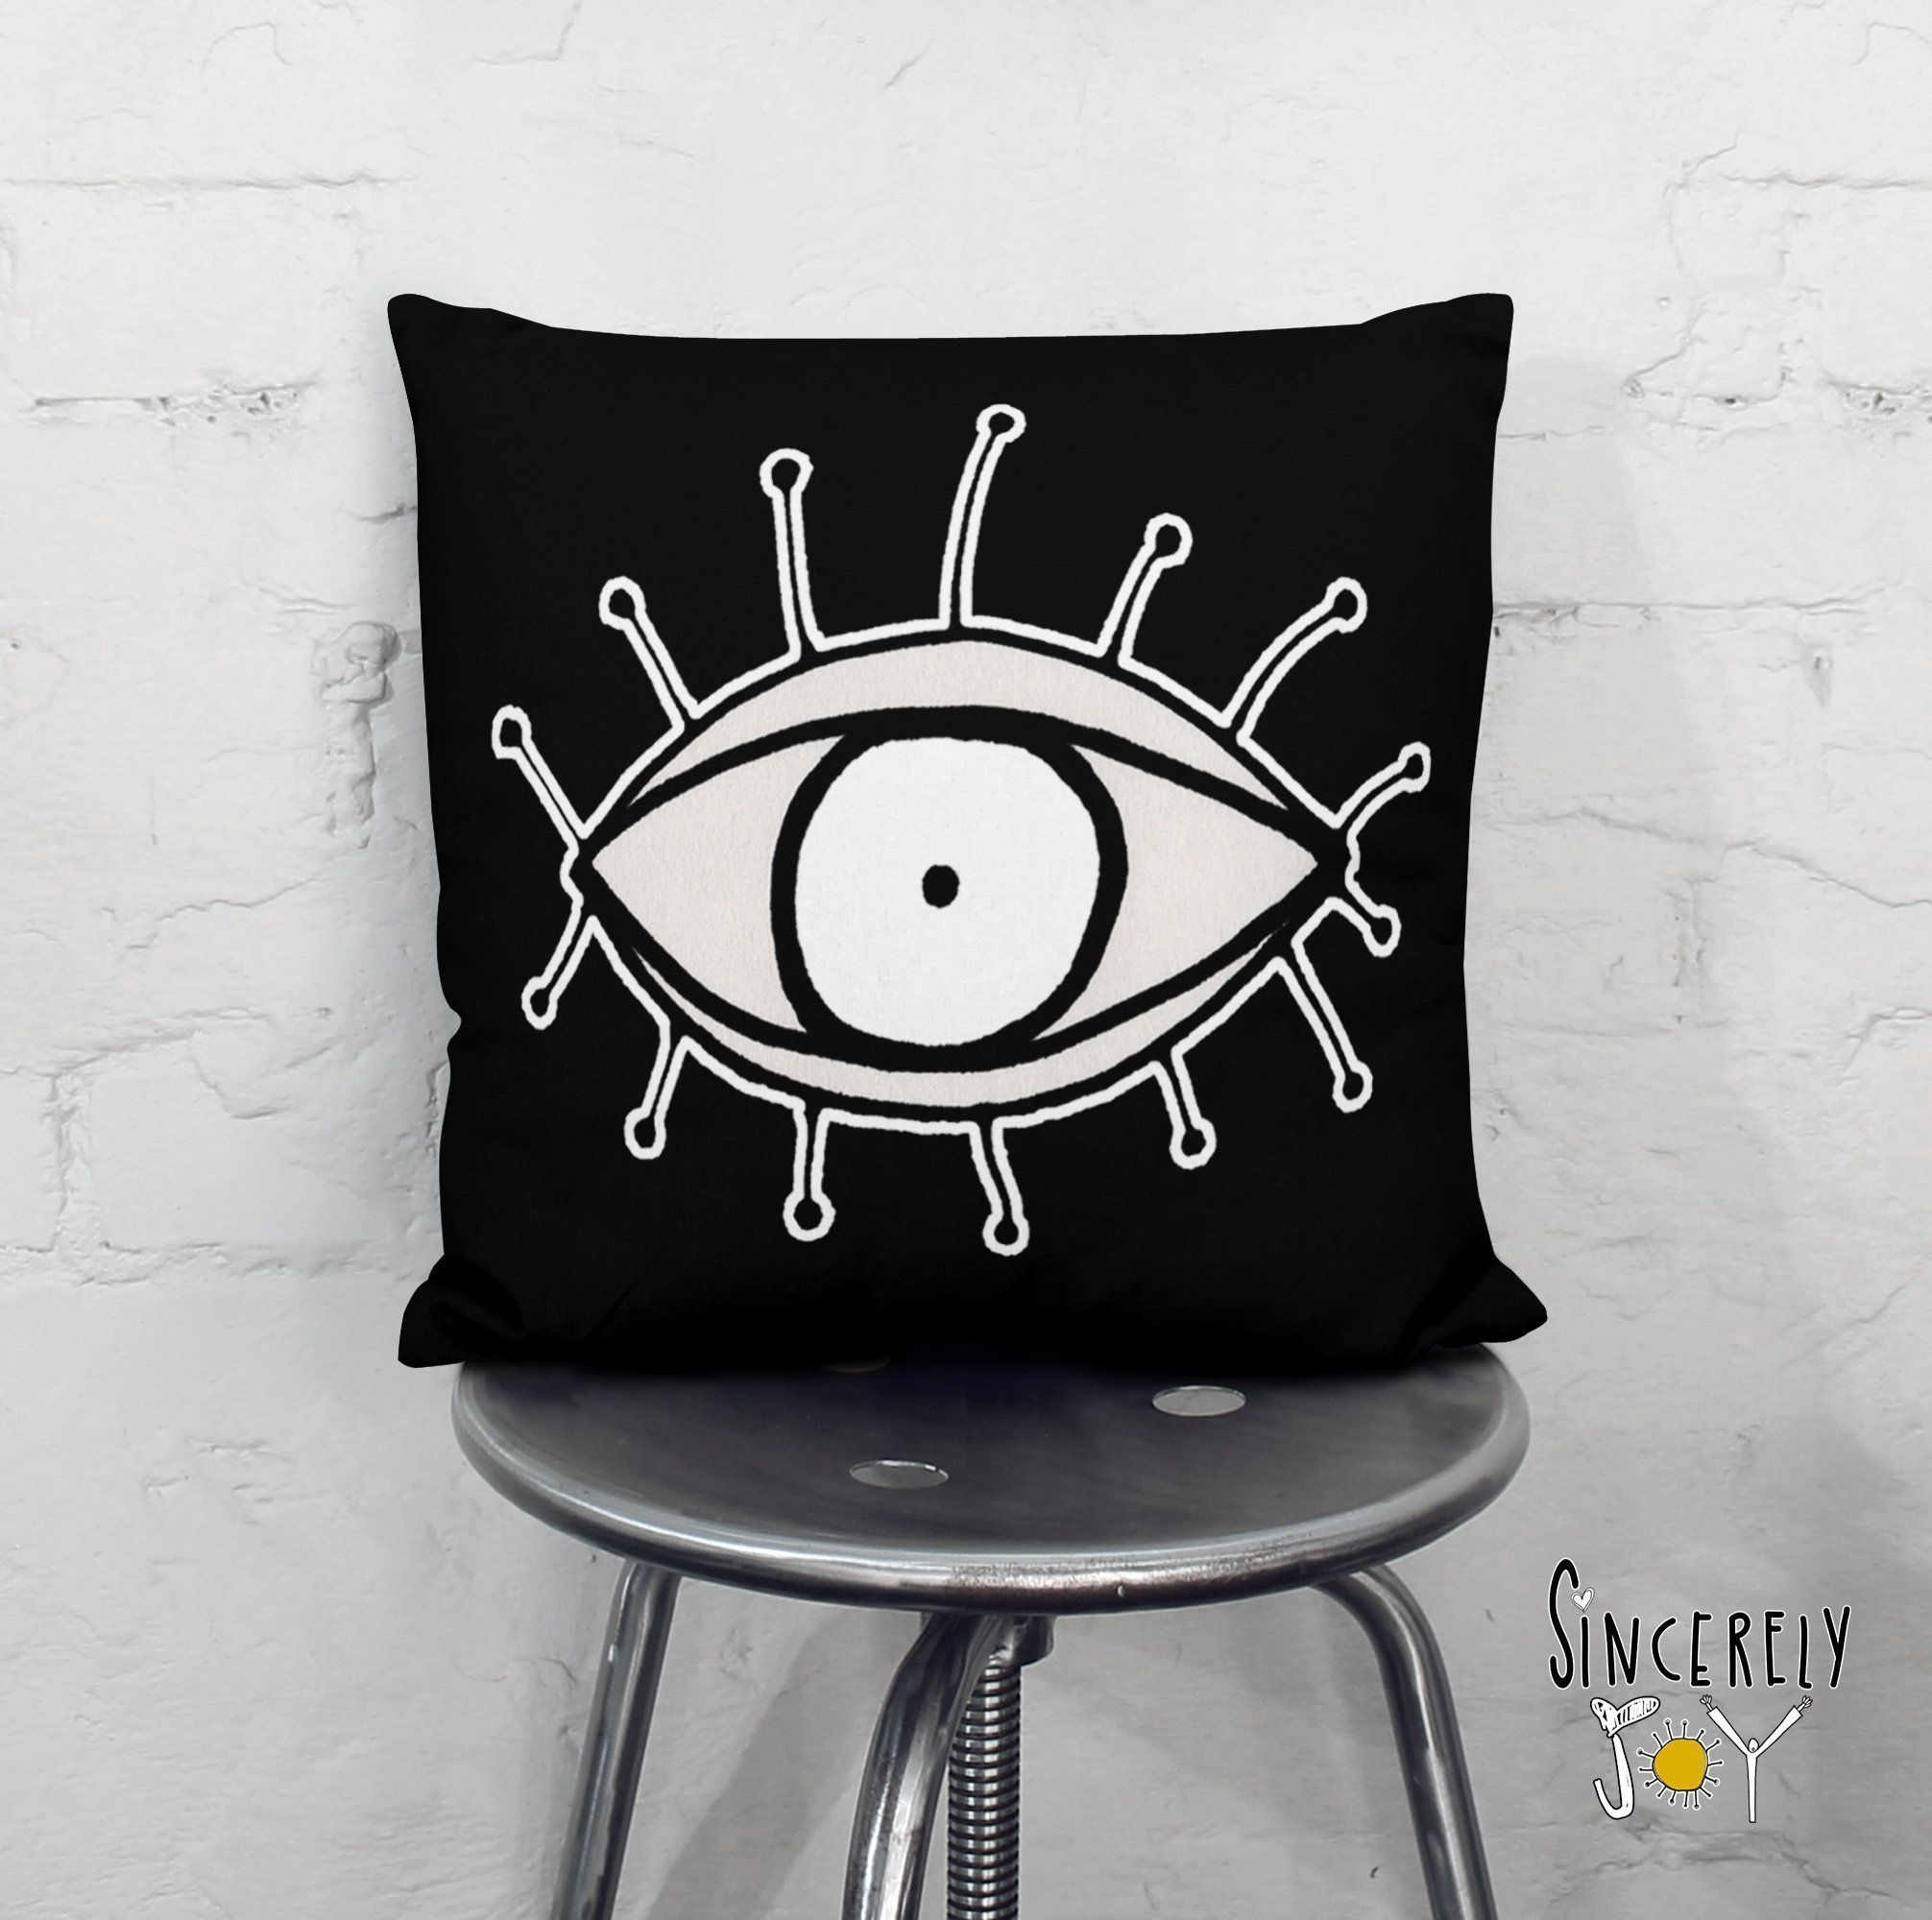 Abstract Eye Pillow Creative Gifts Decor By C Cambrea Art See You 01 Soft Faux Suede Cover The Back Of Will Be A Surprise